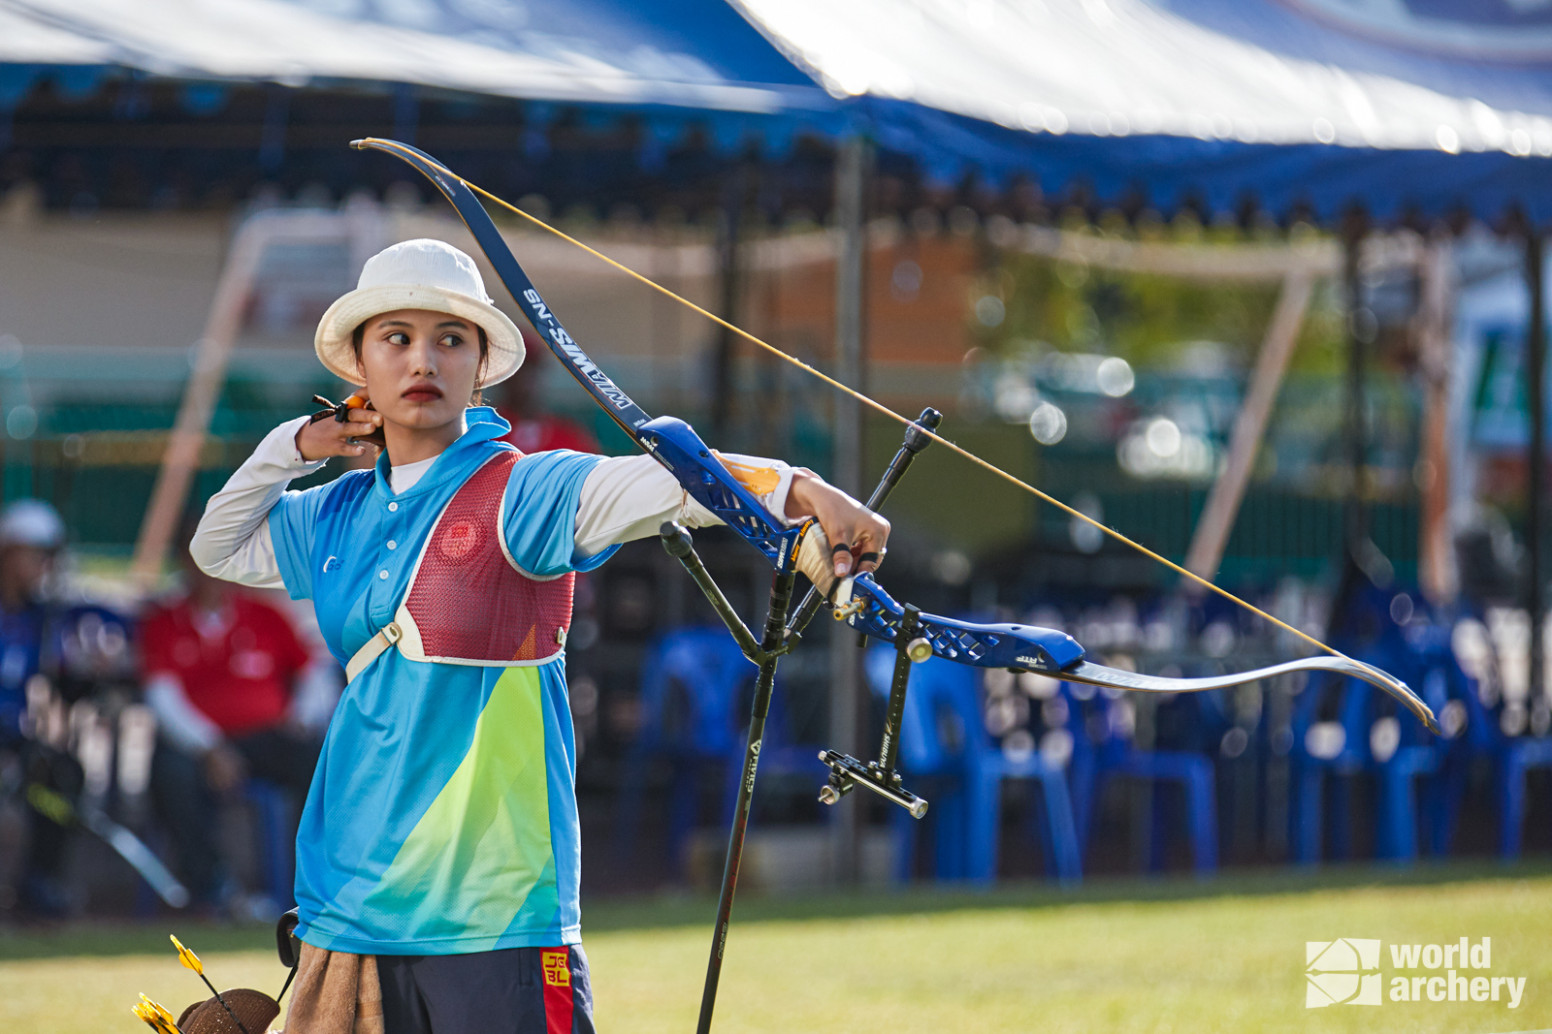 Archery on course for historically diverse Olympic competition at ..